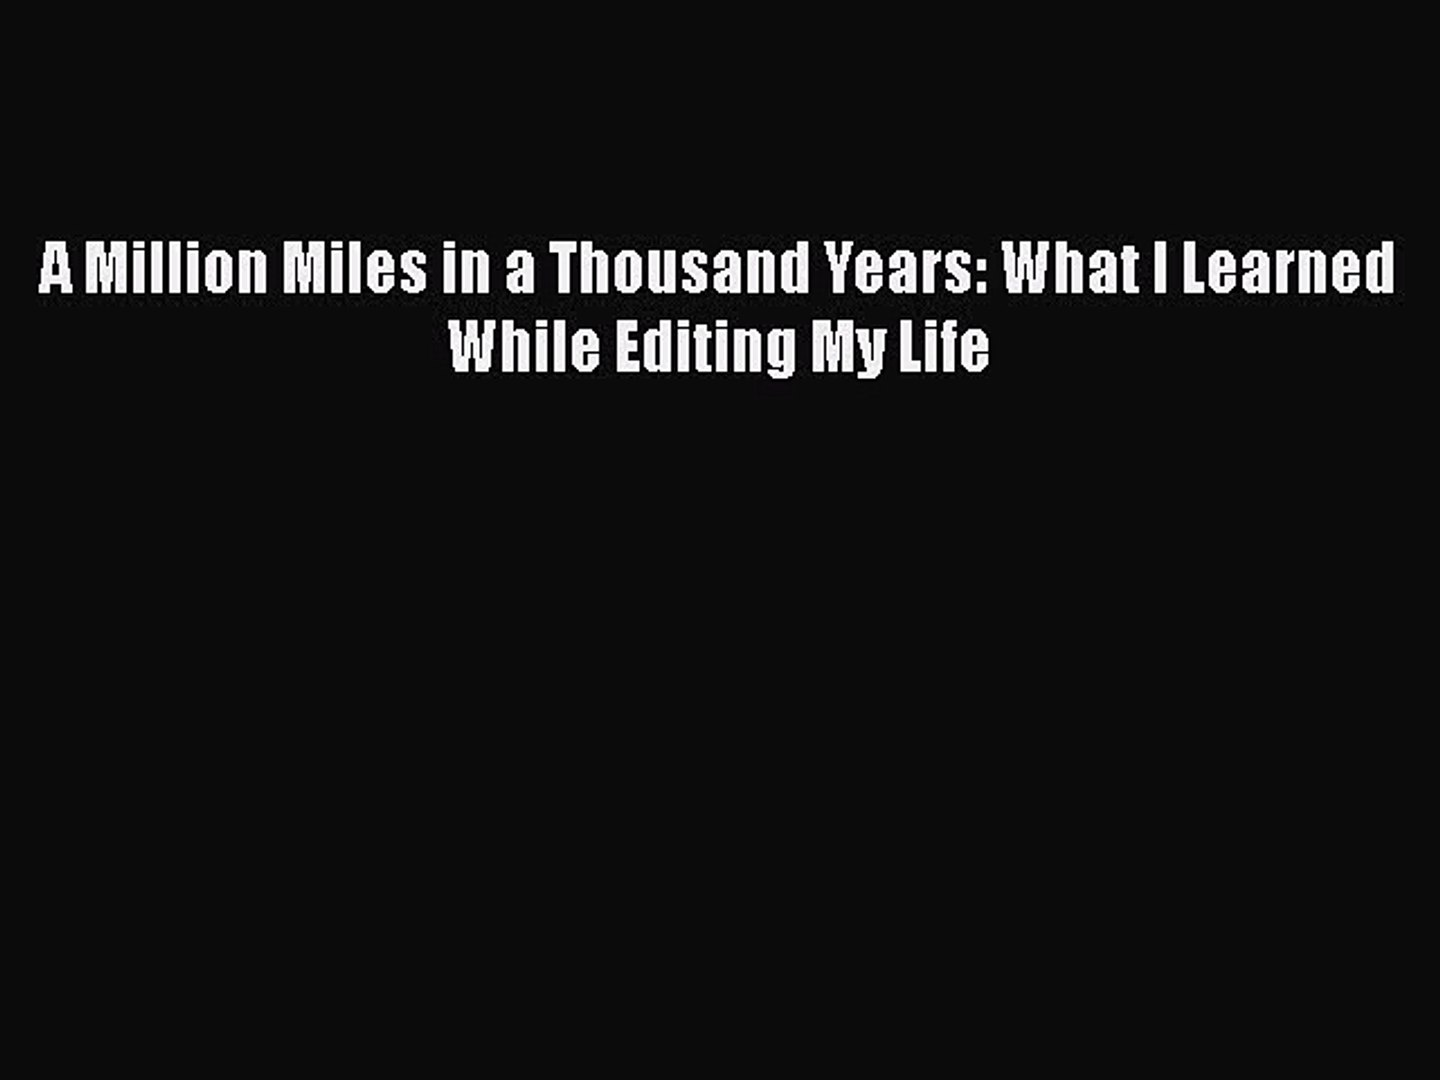 Download A Million Miles in a Thousand Years: What I Learned While Editing My Life  EBook